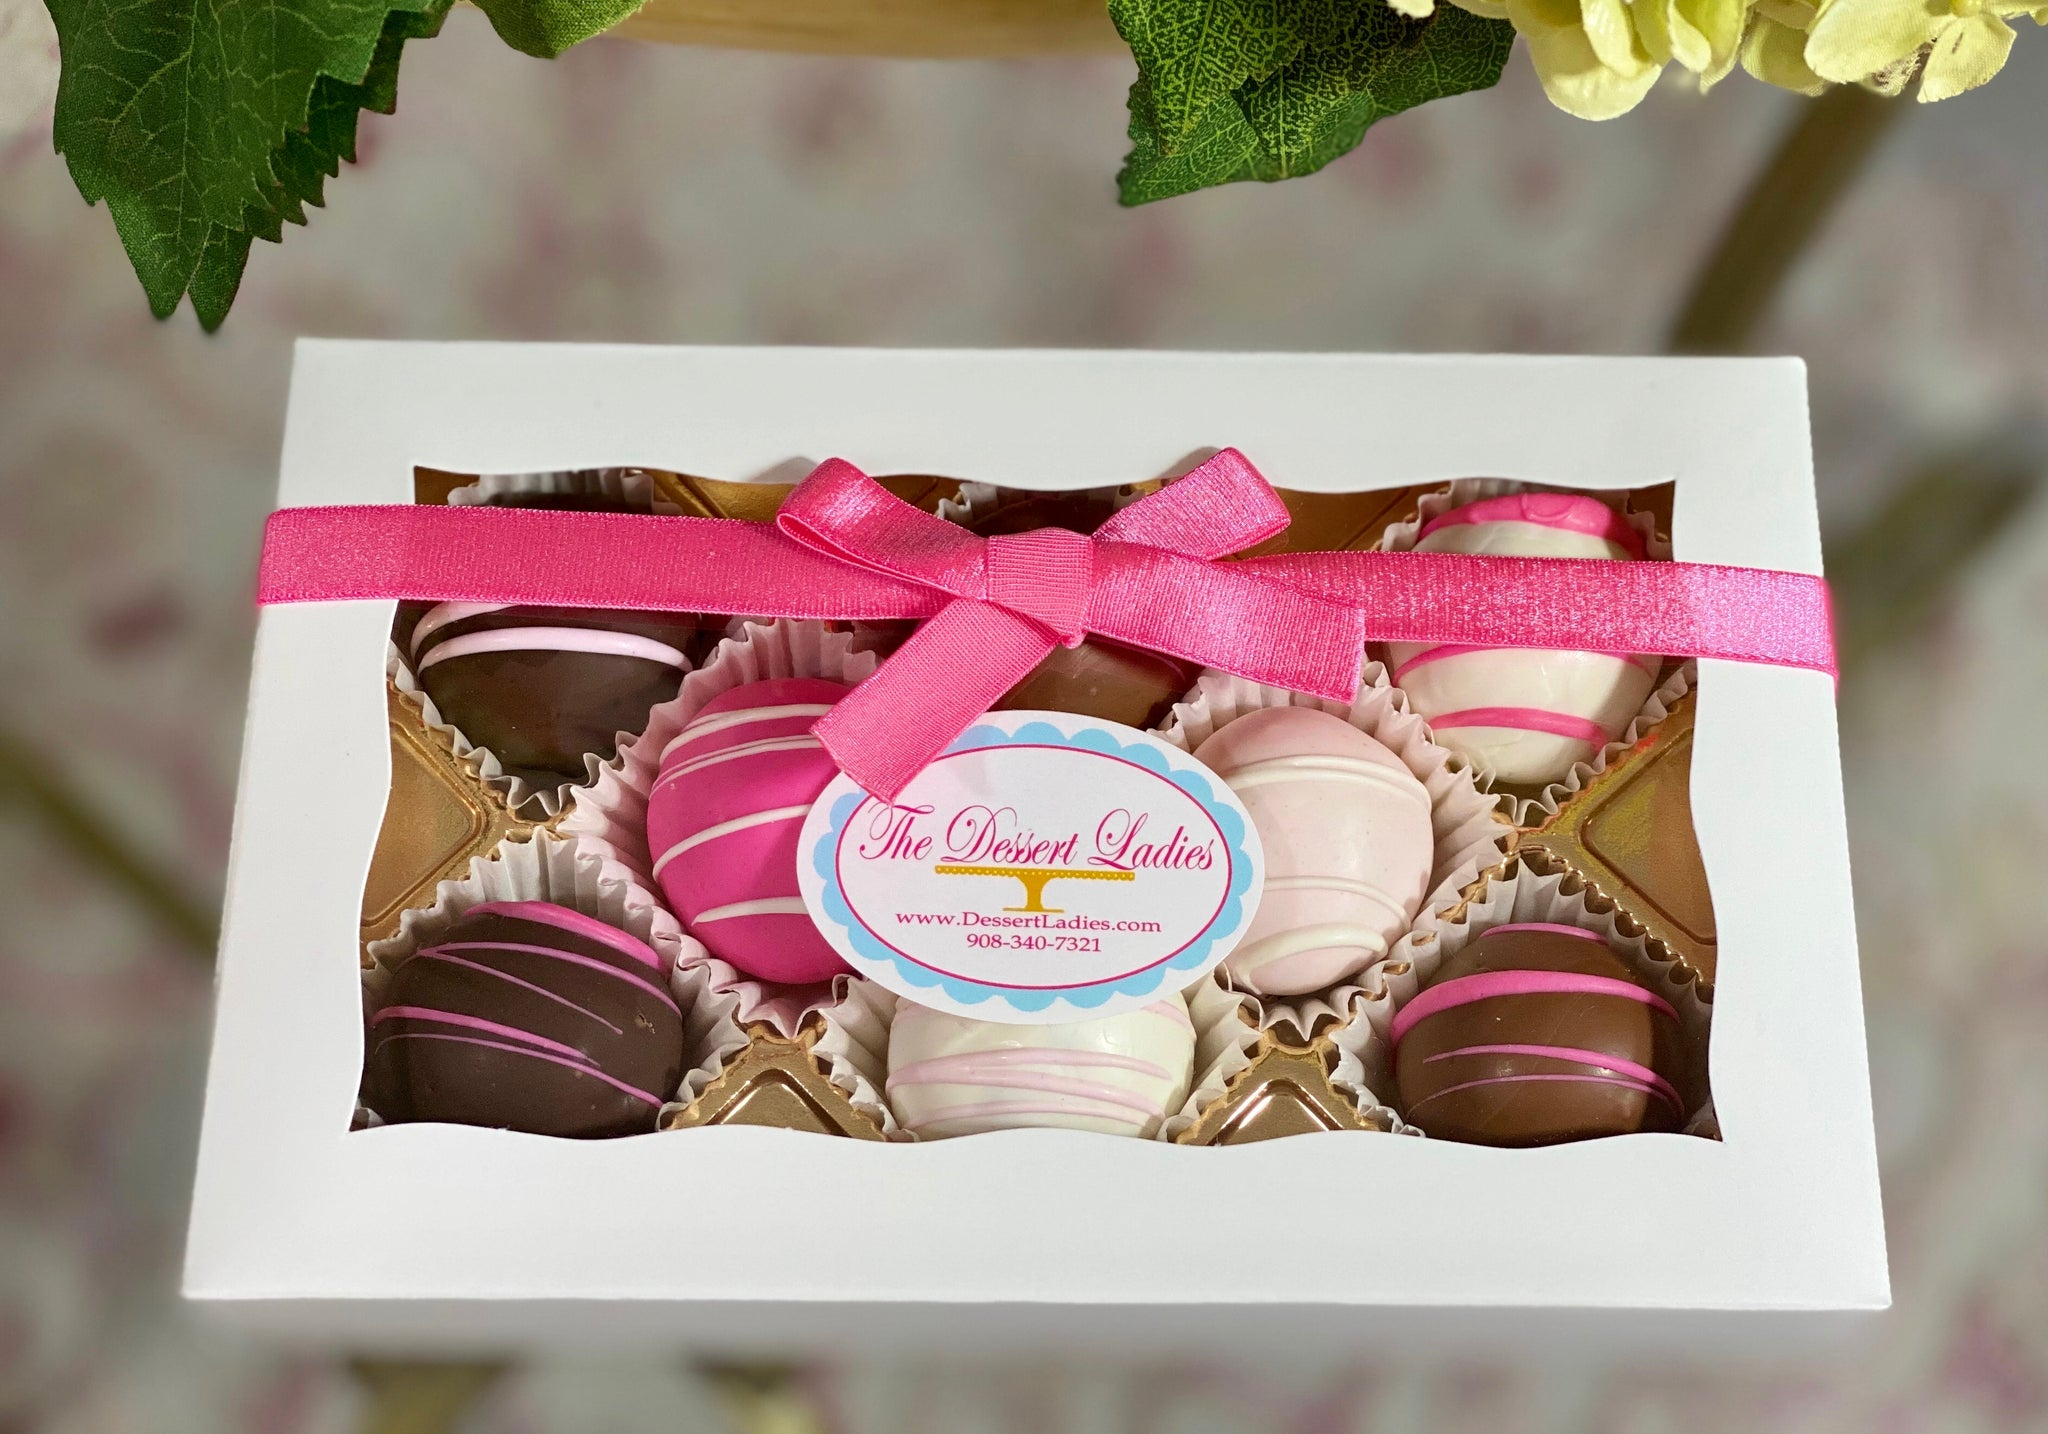 Bien Box of 8- Breast Cancer Awareness Fundraiser - The Dessert Ladies